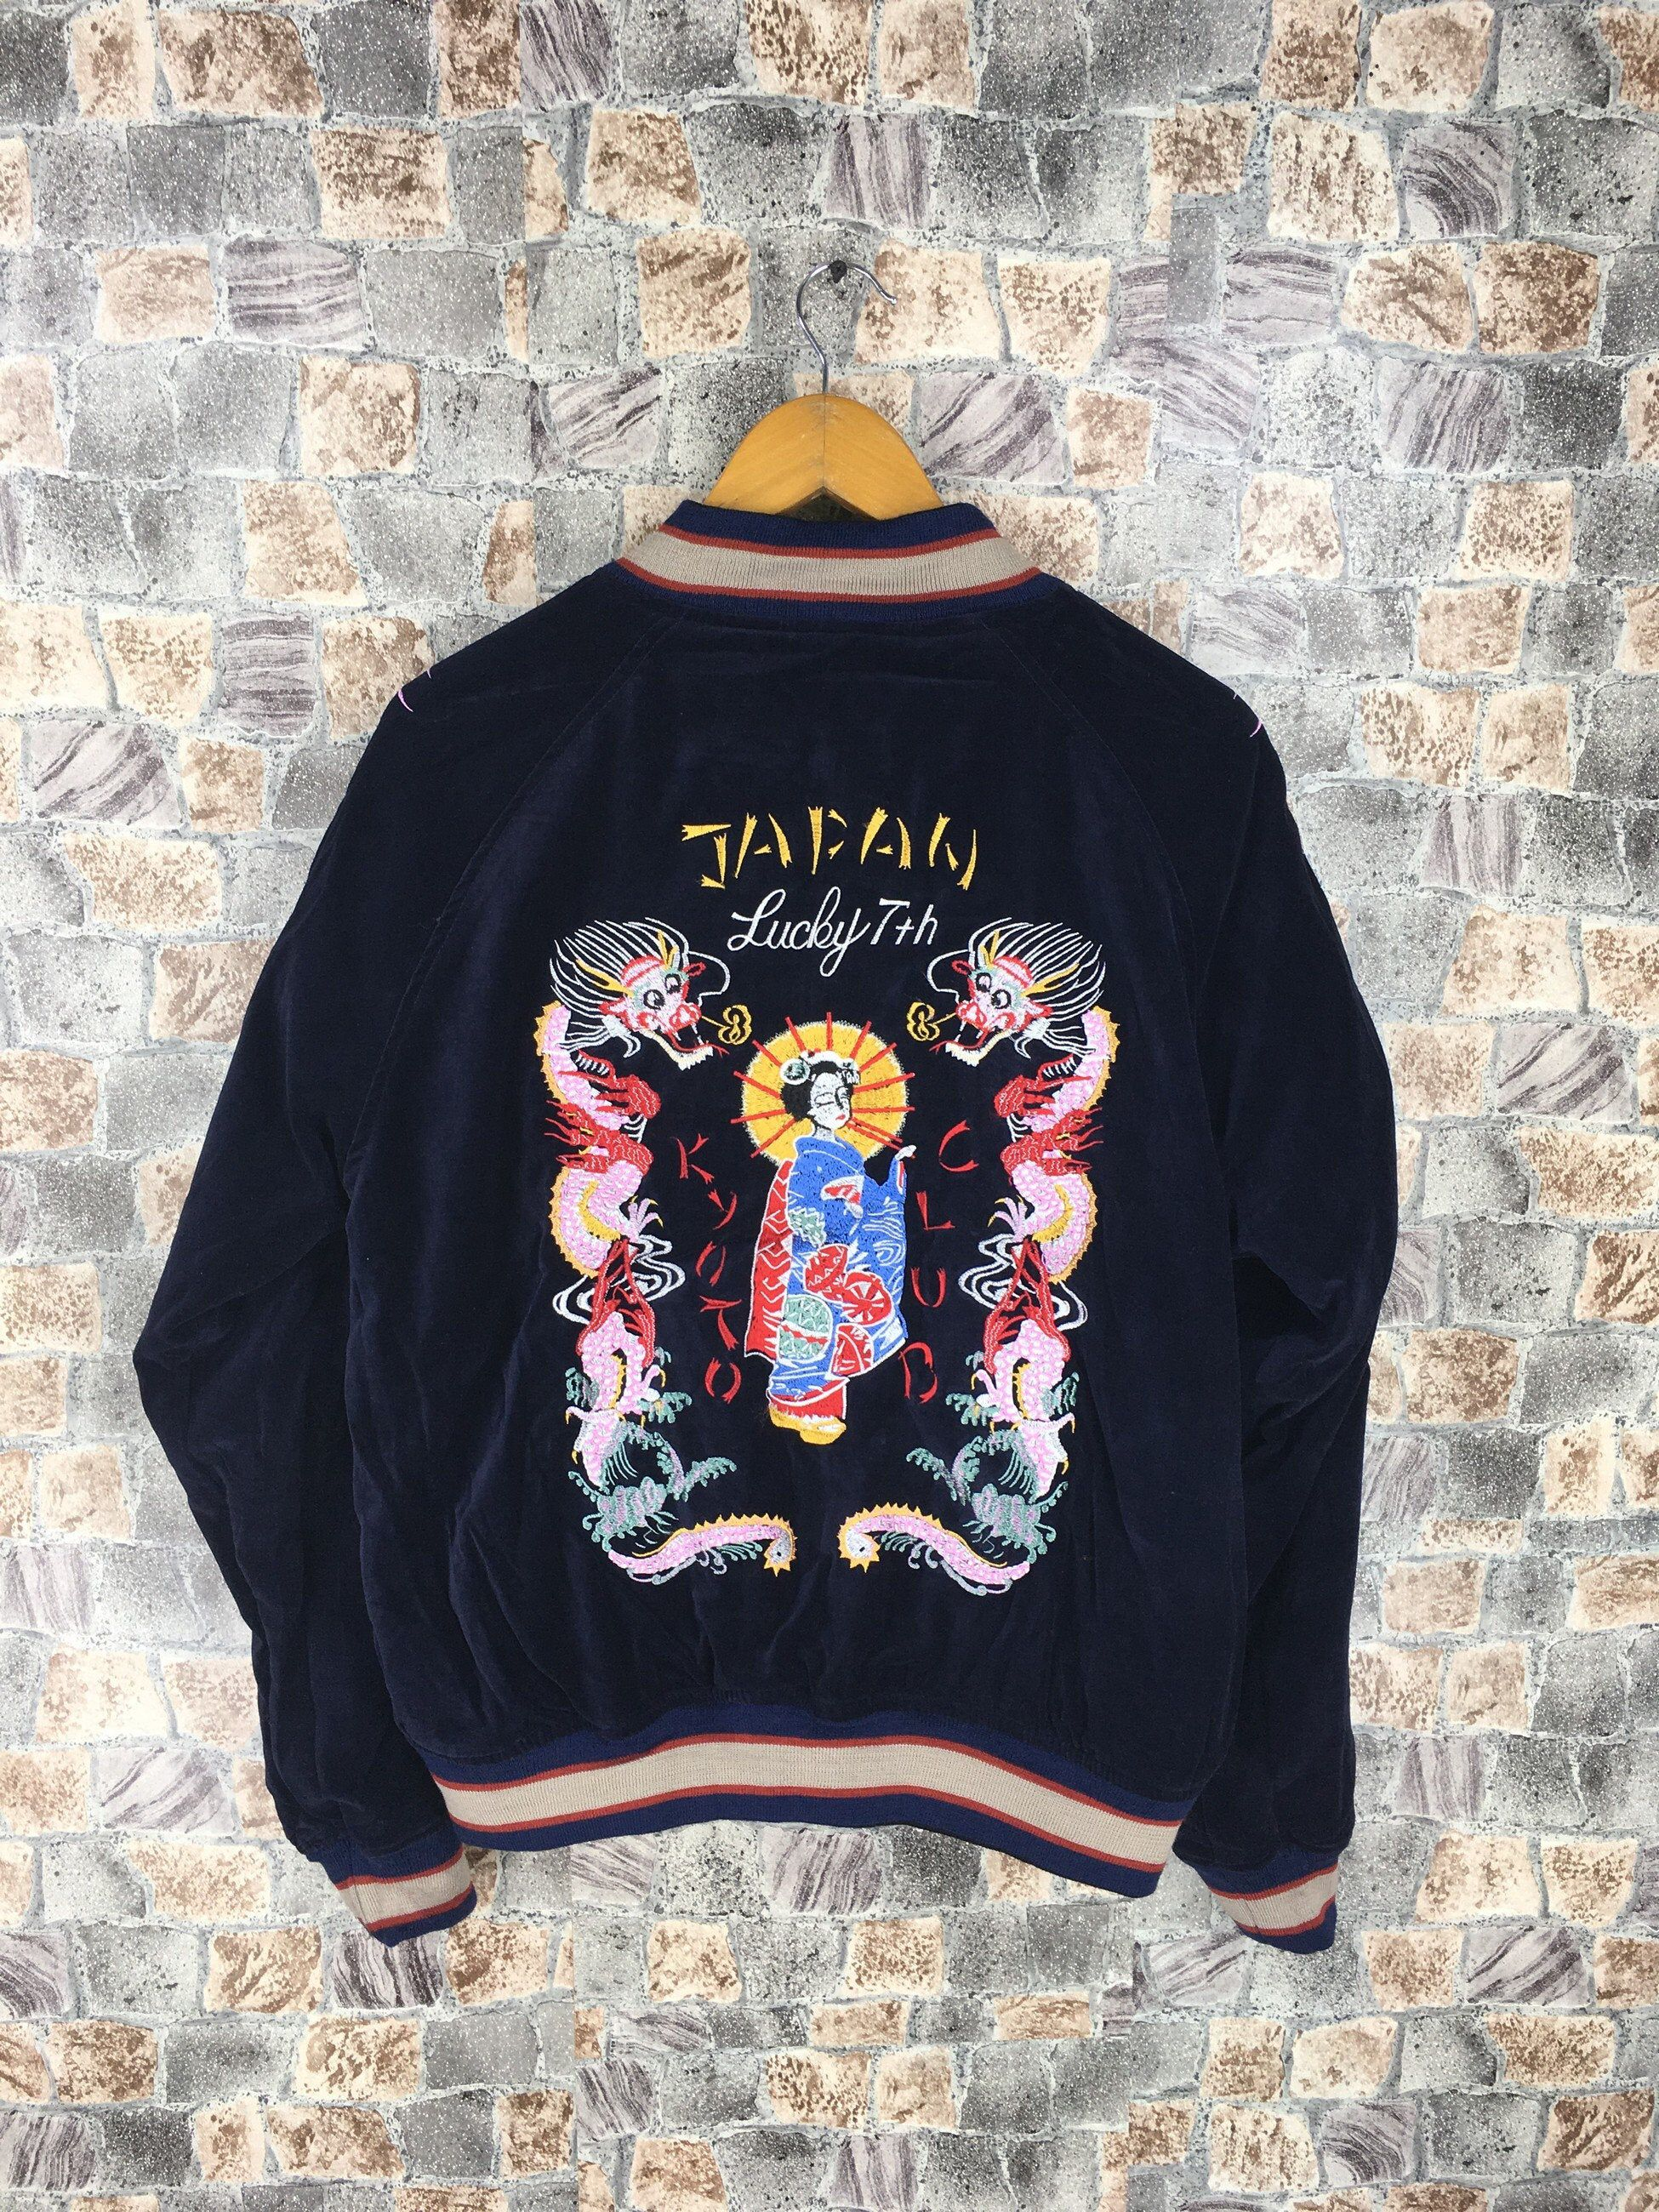 Vintage Sukajan Geisha Japan Jacket Large 1980s Sukajan Etsy In 2021 Reversible Jackets Sukajan Jacket Japanese Embroidery